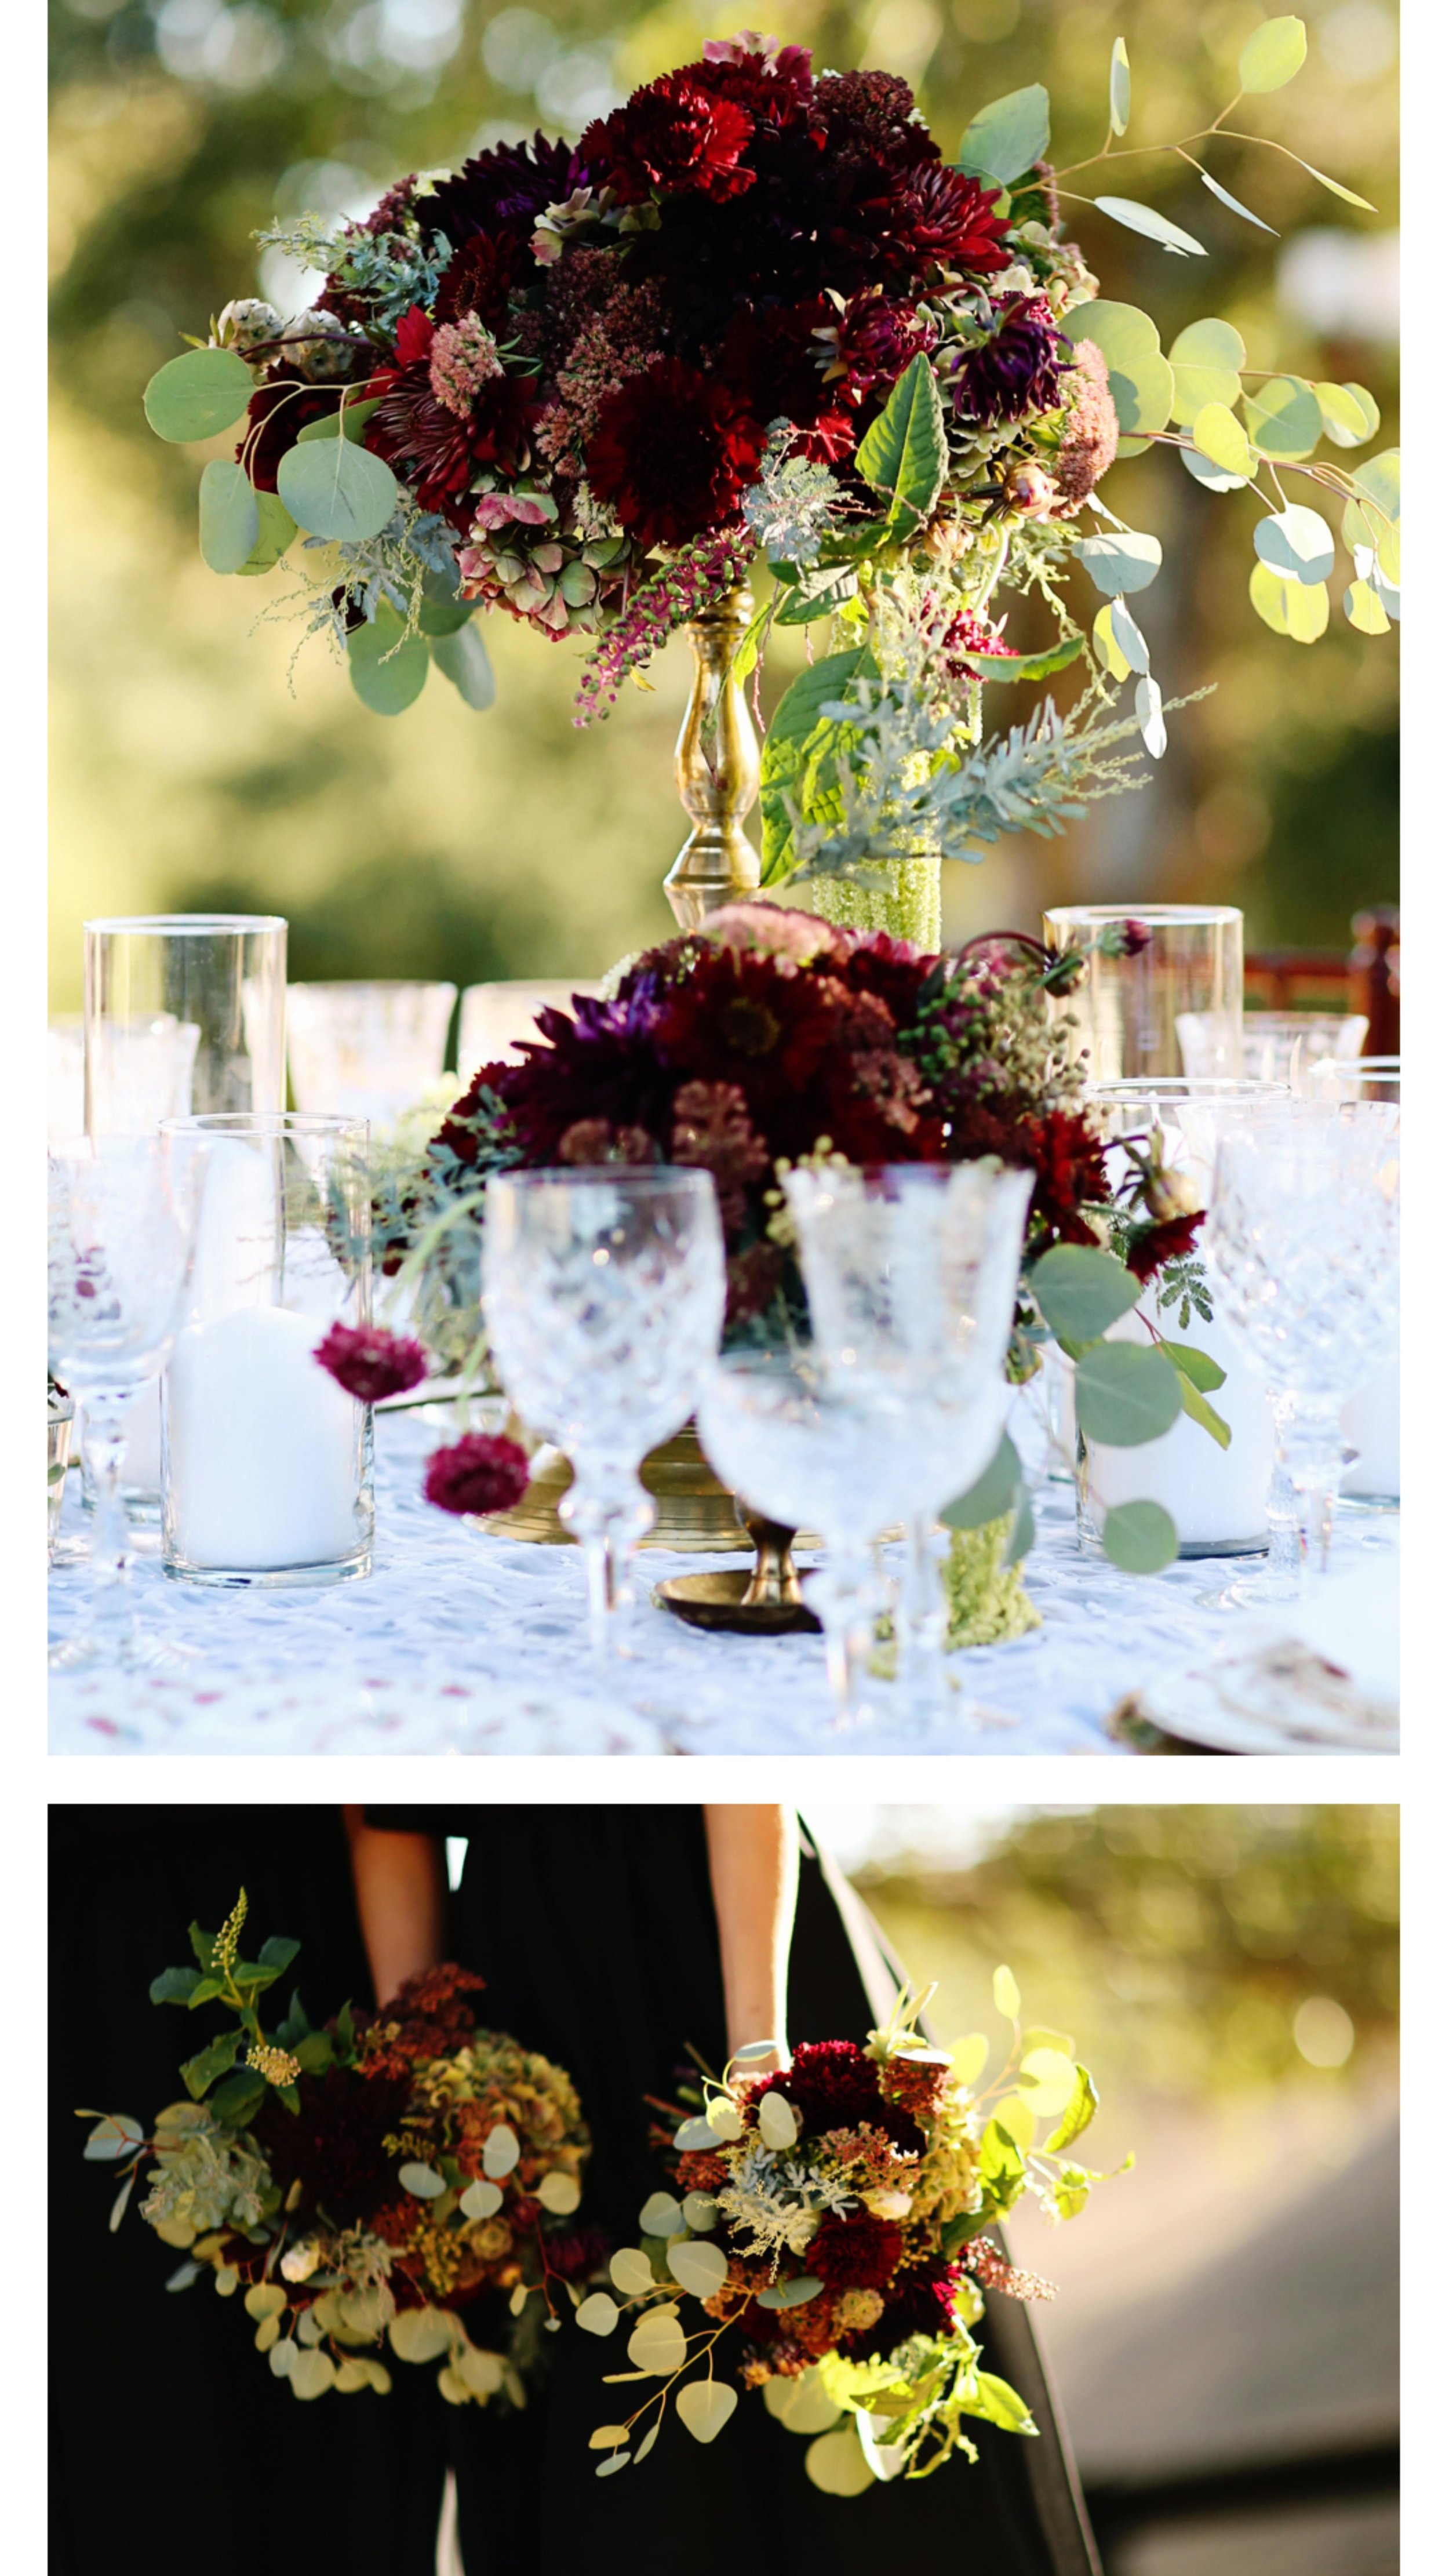 Bleudog Floral supplied all the florals for this Marsala wedding styled shoot at Chateau Adare in Murrieta. The chocolate dahlias were the show stopper.